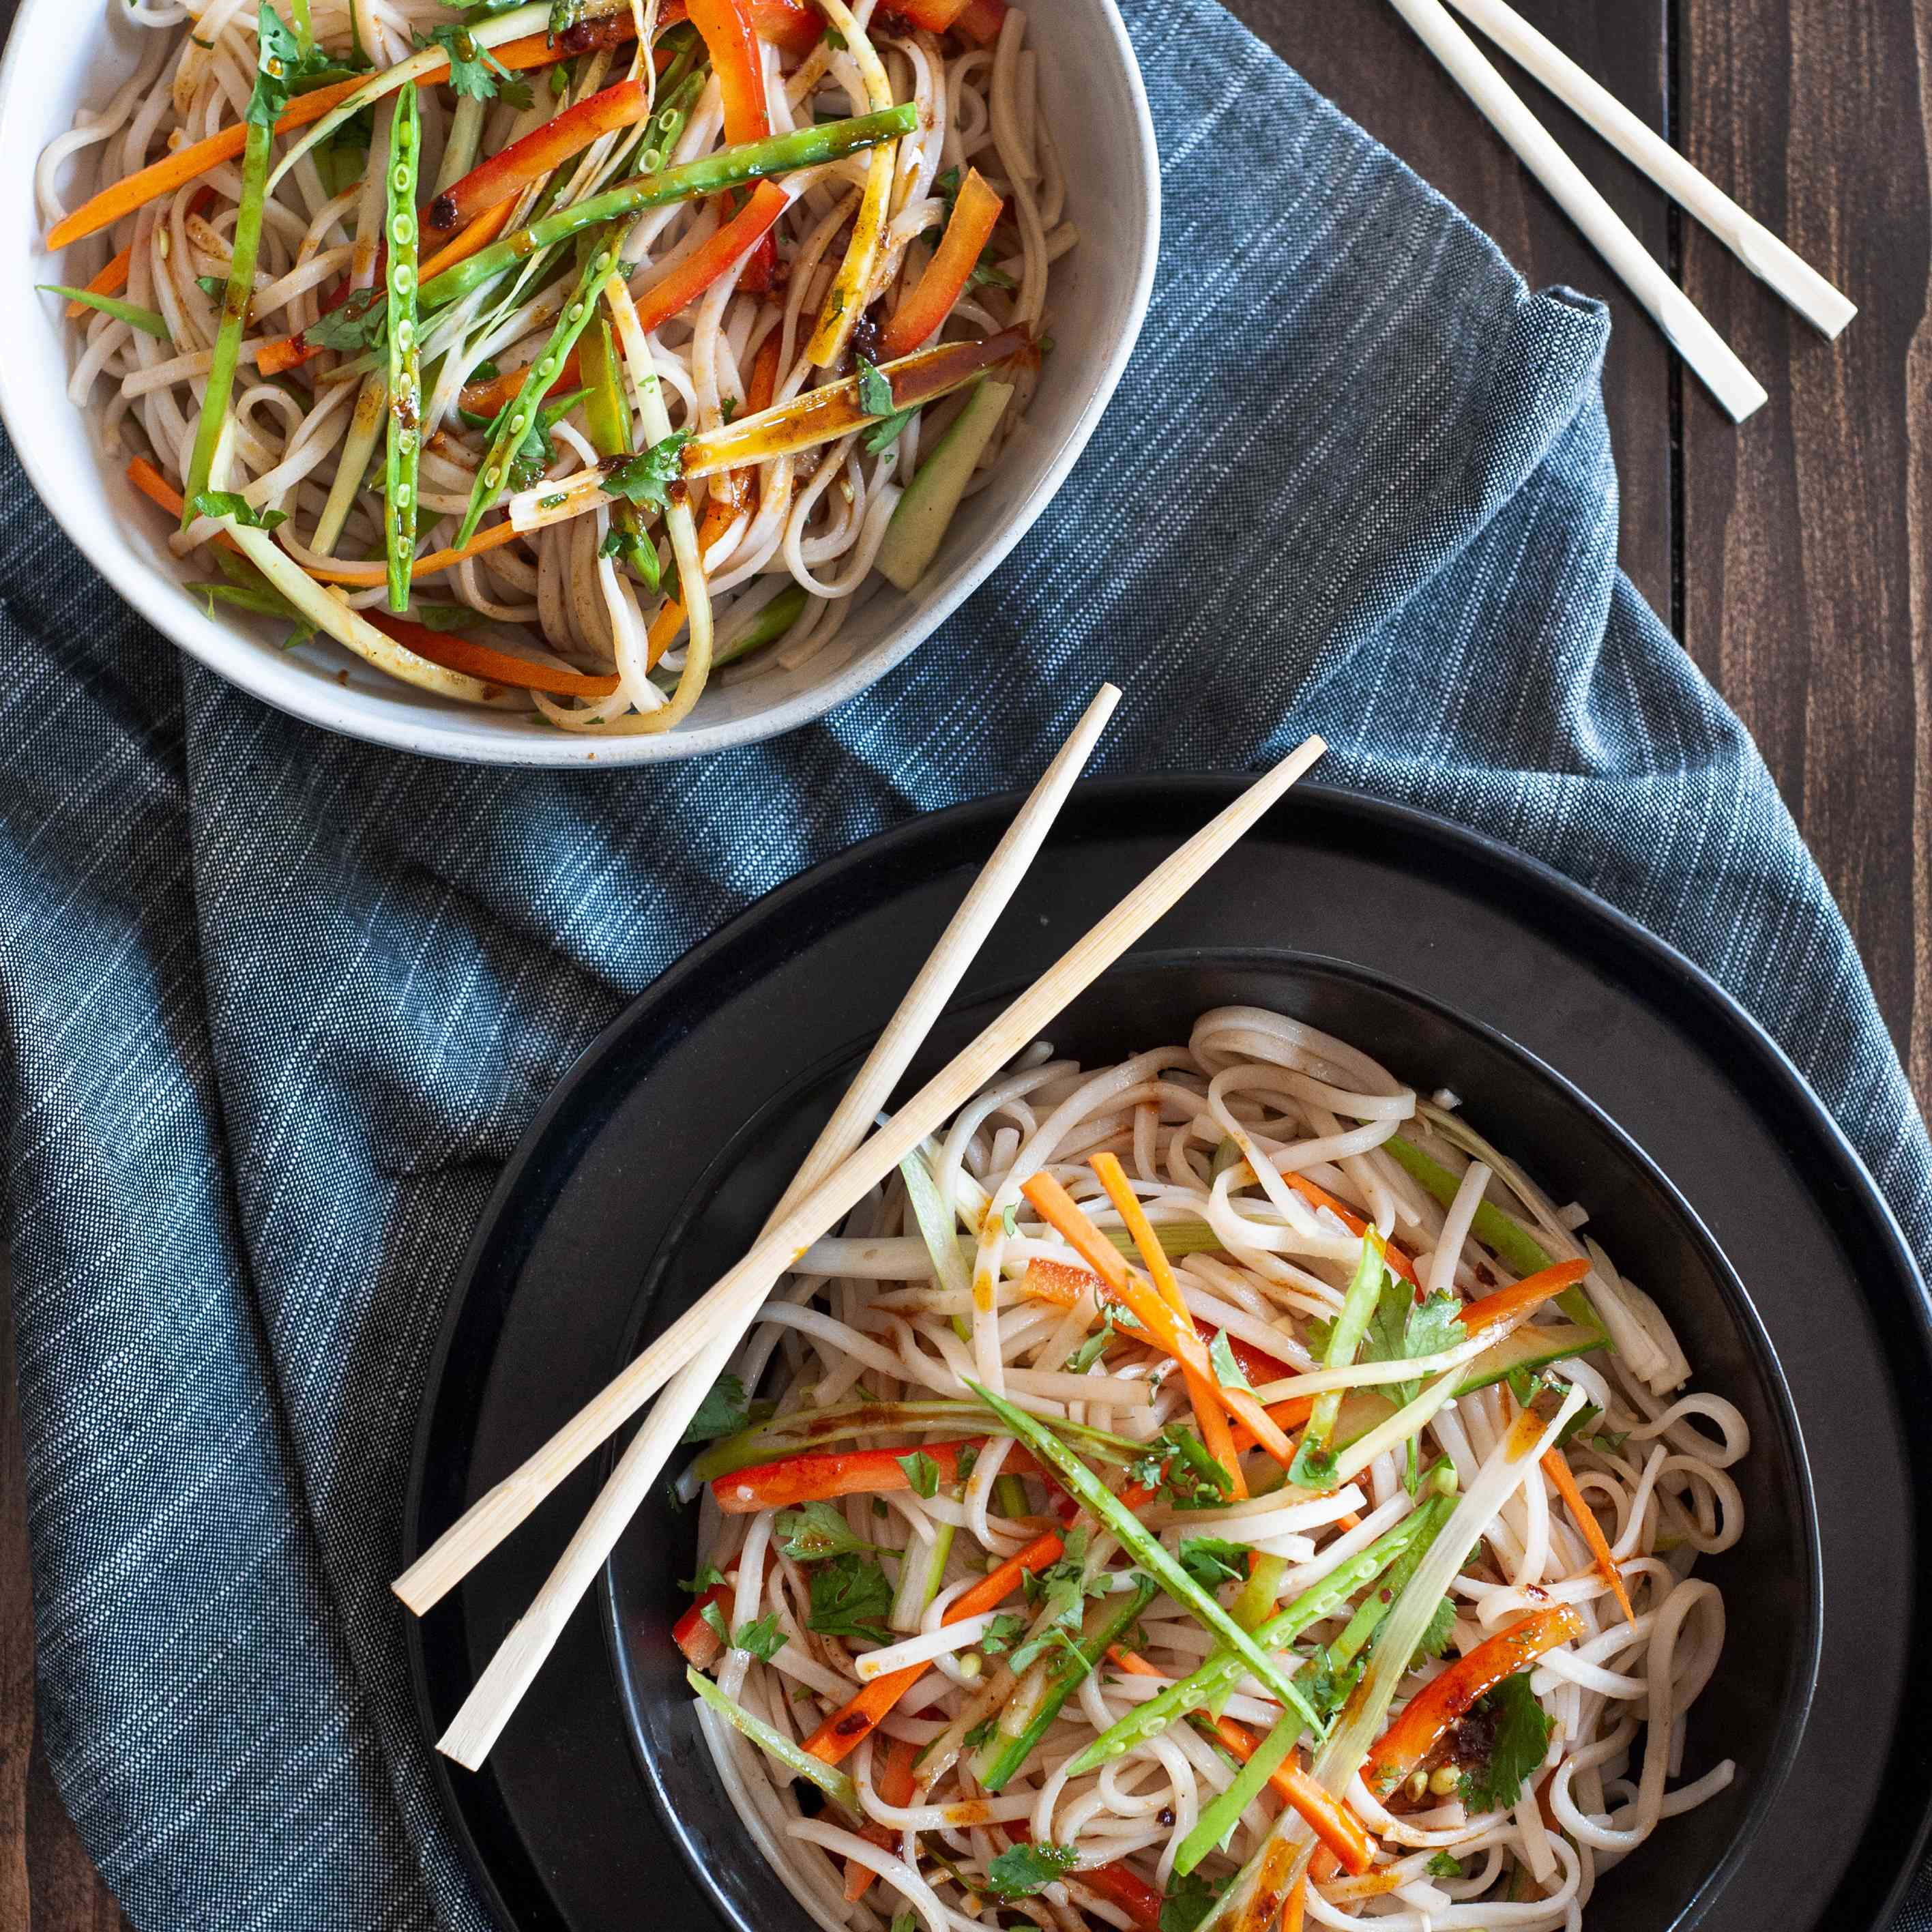 Rice noodle salad with sesame dressing seen overhead in two bowls with chopsticks set next to them.